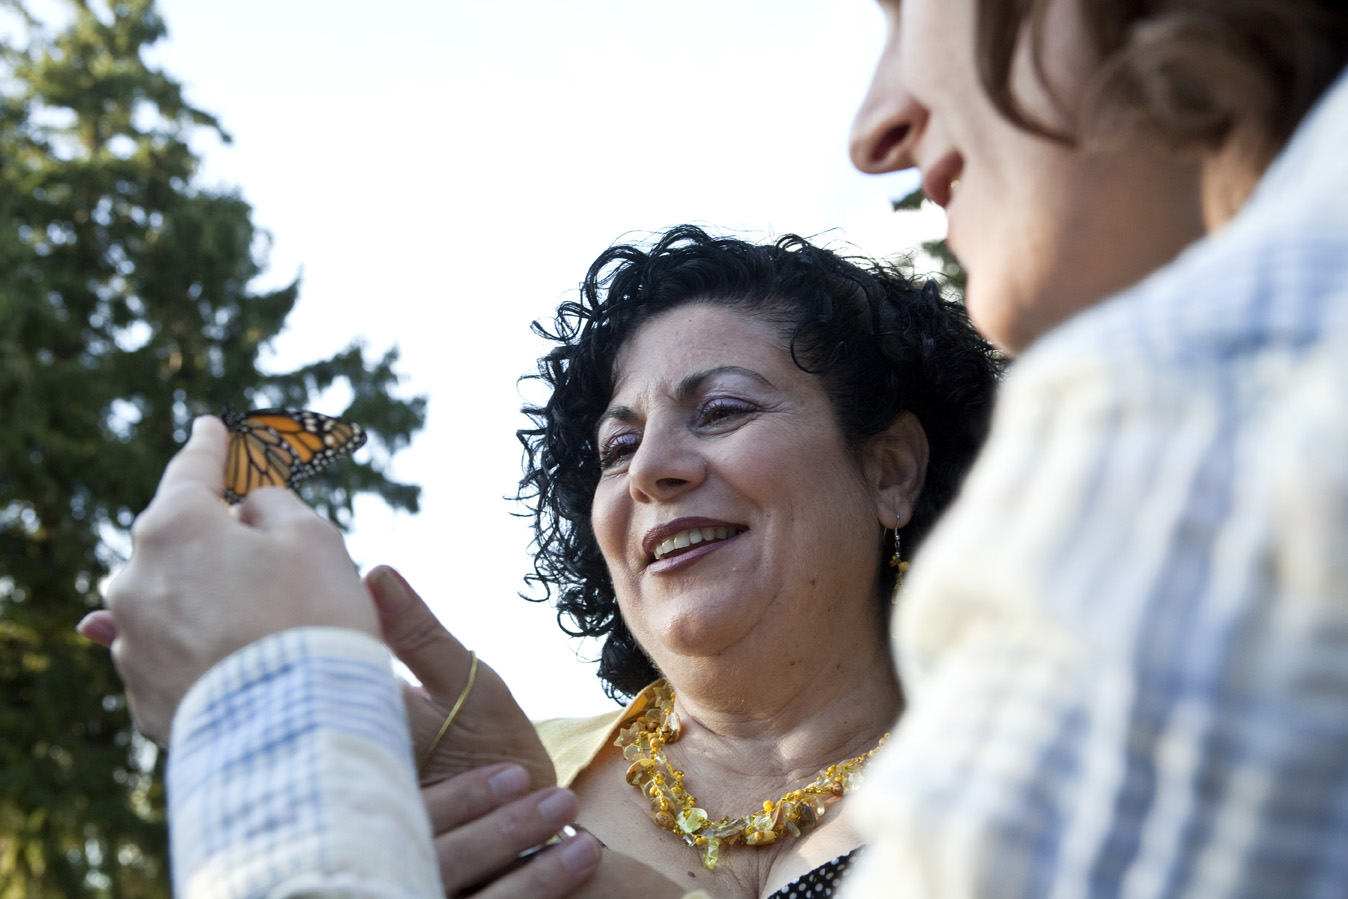 Maria Macrae releases a butterfly as part of a suicide awareness event.